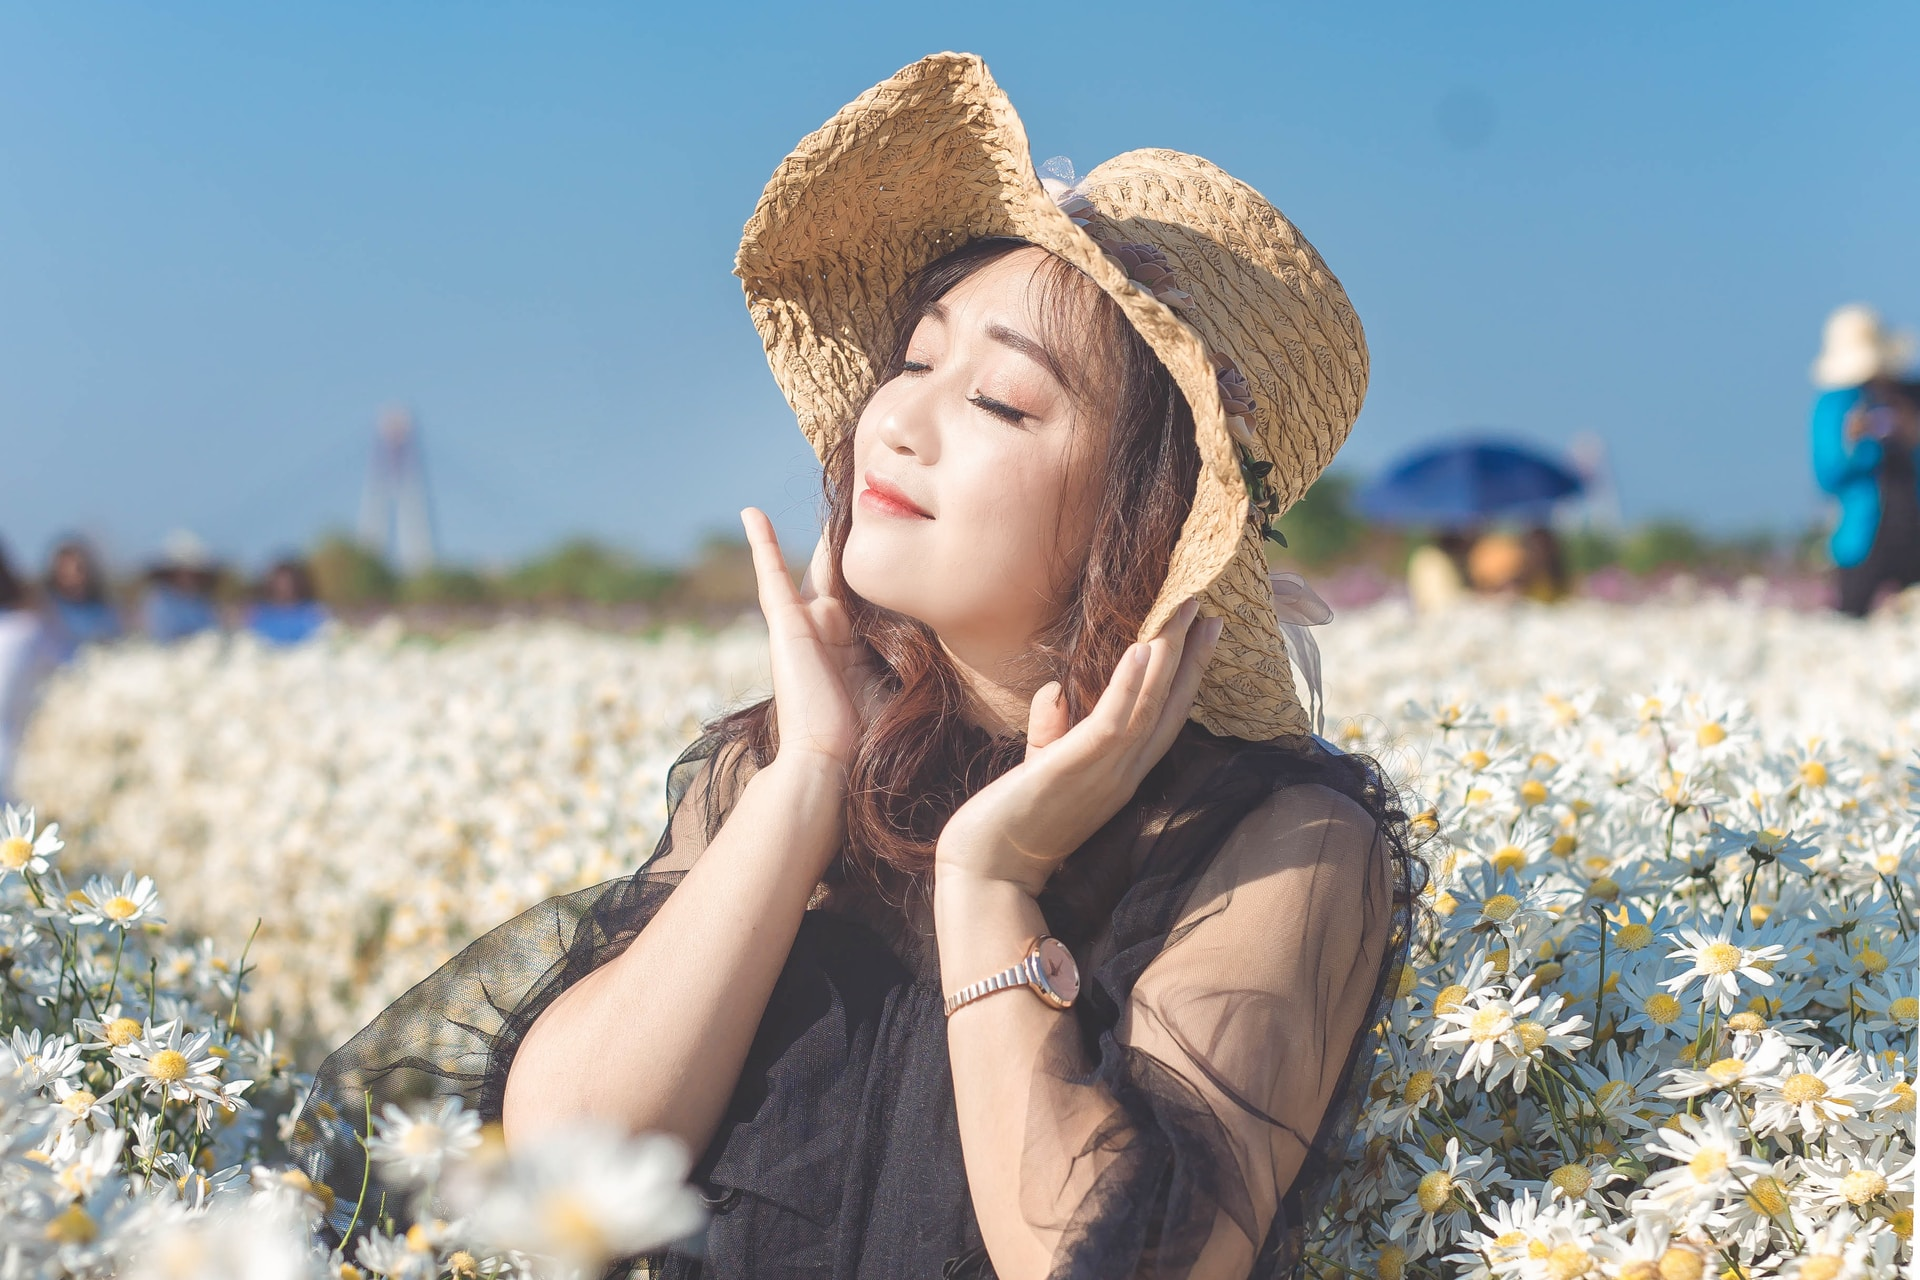 woman in brown sun hat sitting on white flower field during daytime